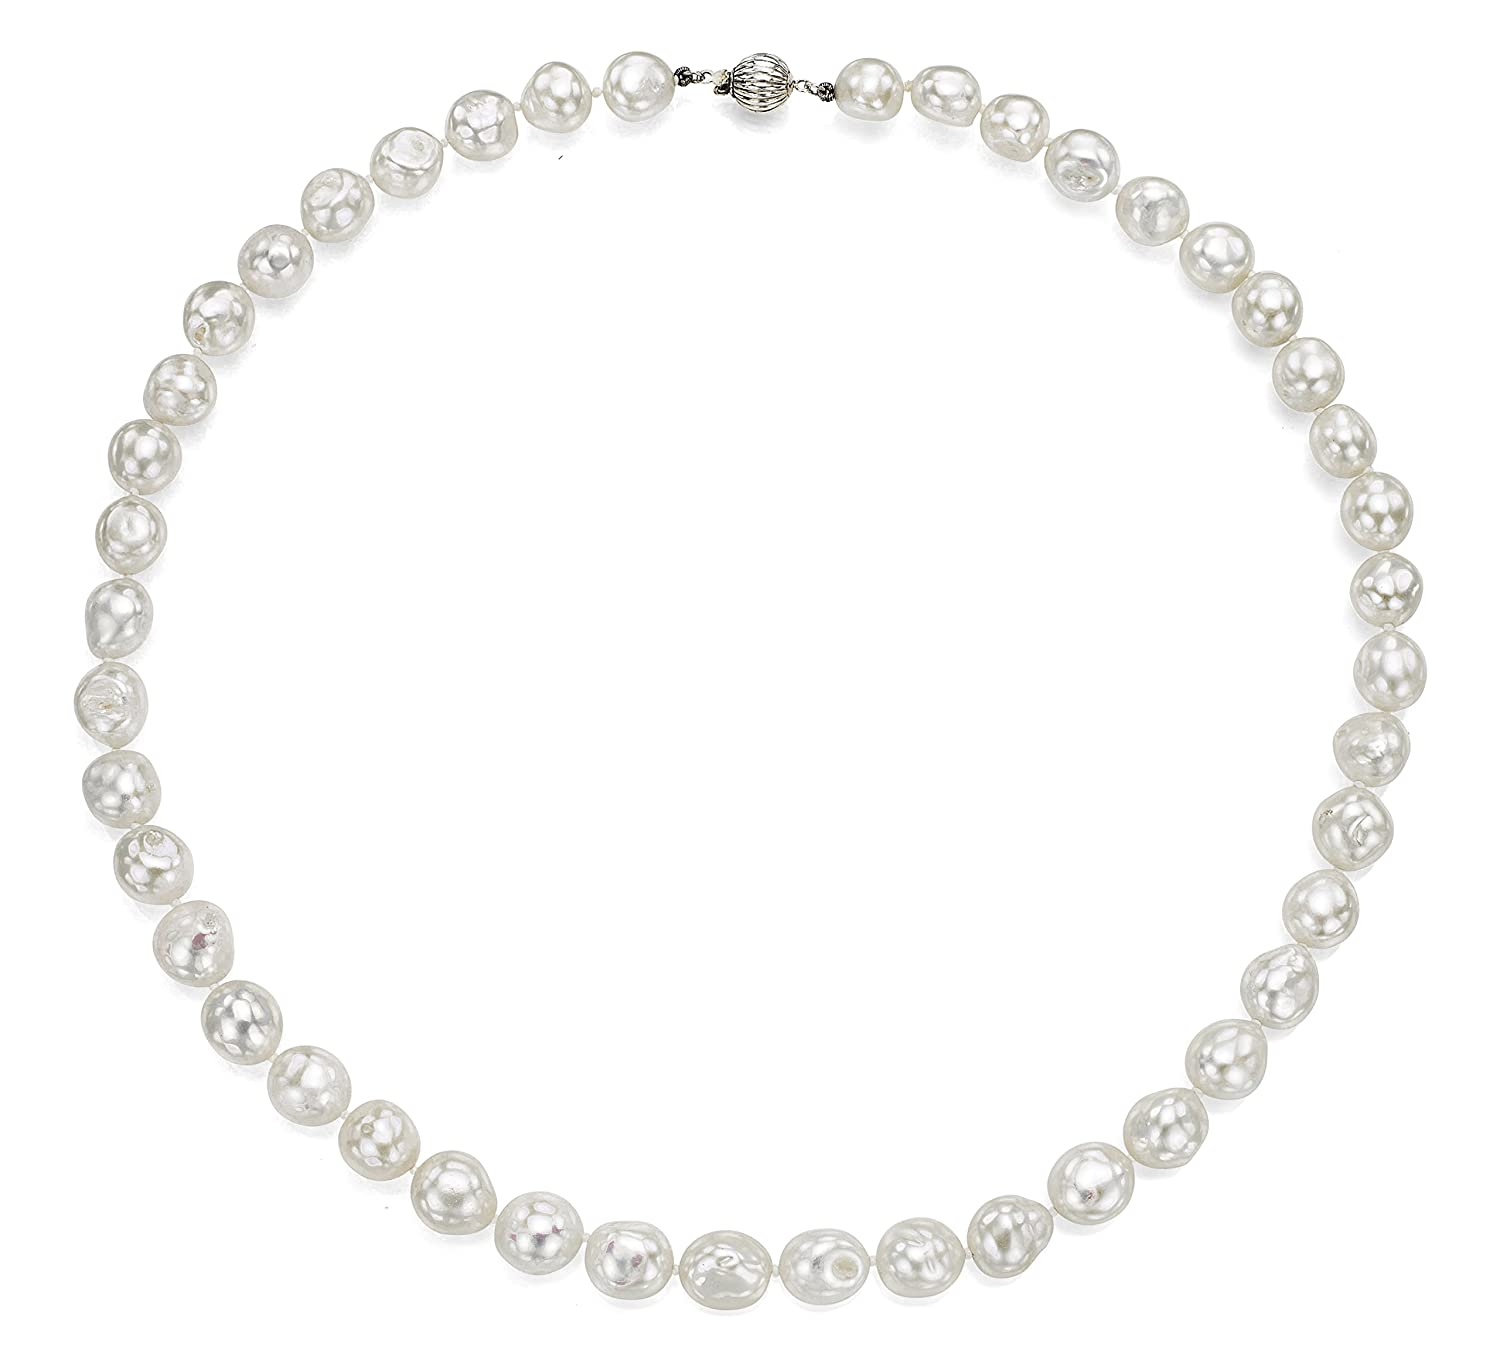 Sterling Silver 11-11.5mm White Baroque Freshwater Cultured Pearl Ball Clasp Necklace, 24 24 La Regis Jewelry